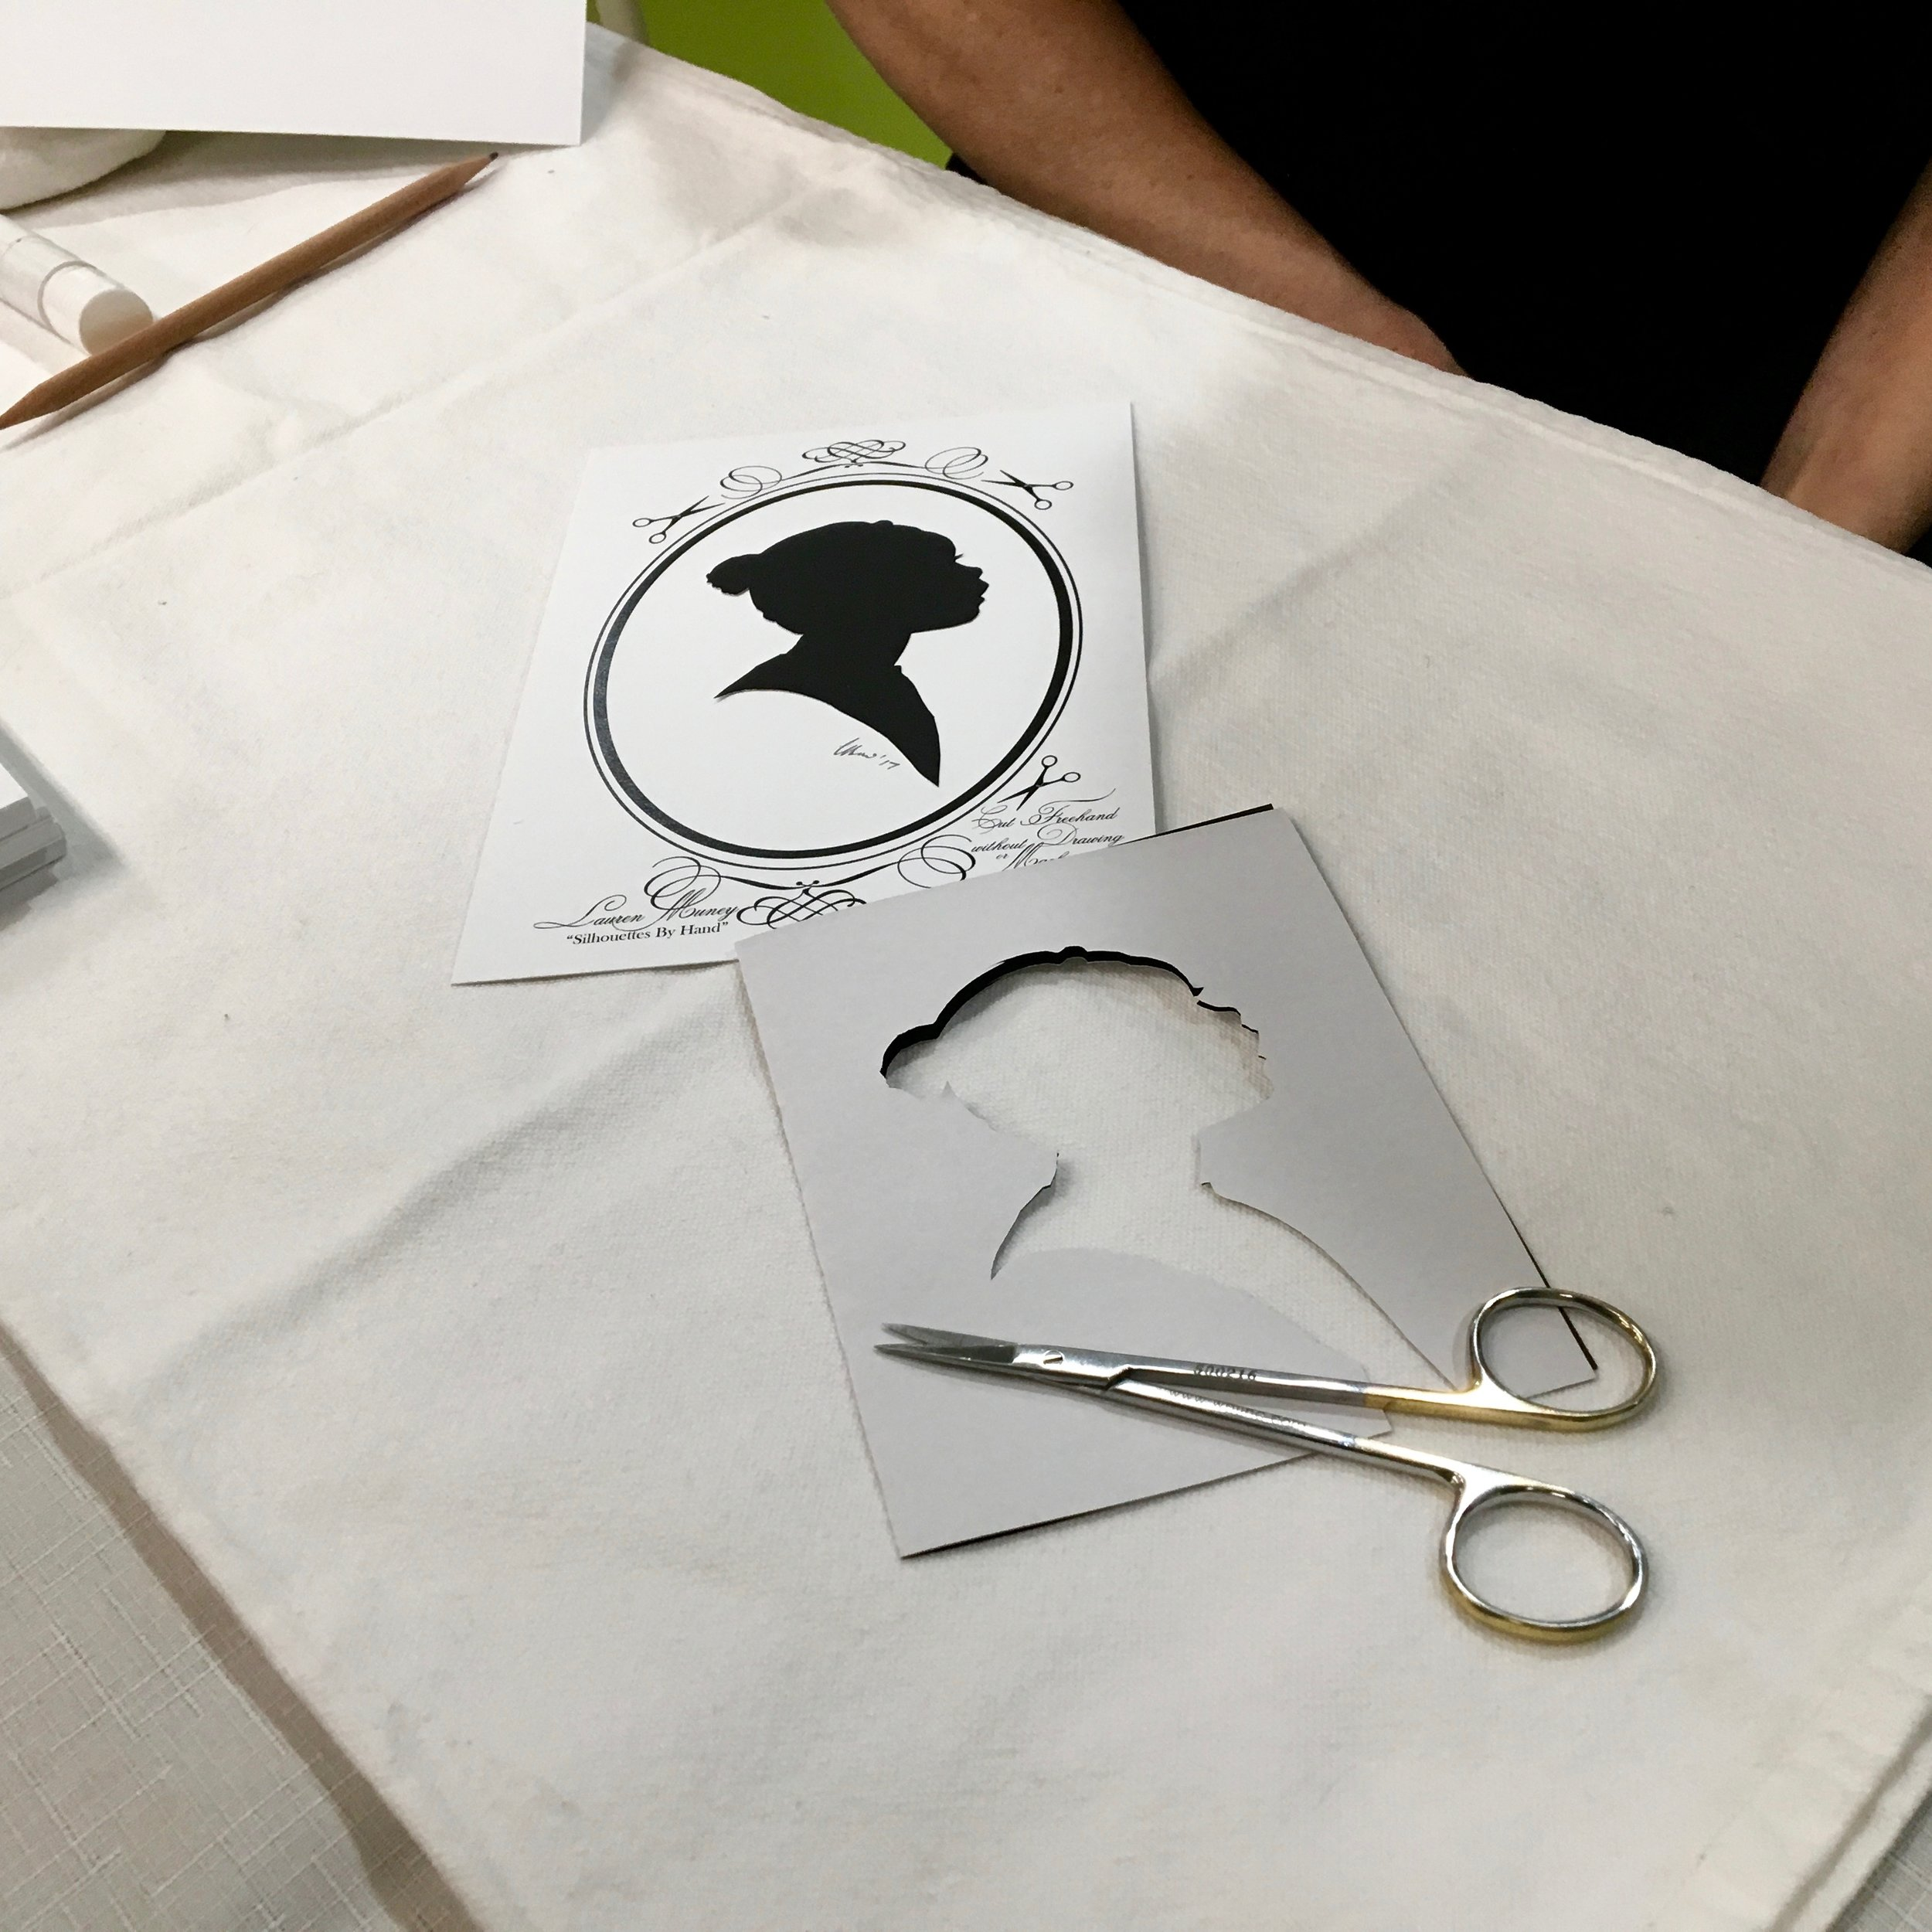 Traditional Silhouette portraits are cut freehand with only scissors, without any device or even a shadow. Experience this rare and old portrait form for yourself. (Photo by Tony Ventouris for Montgomery Parks, USA.  More photos are here. )